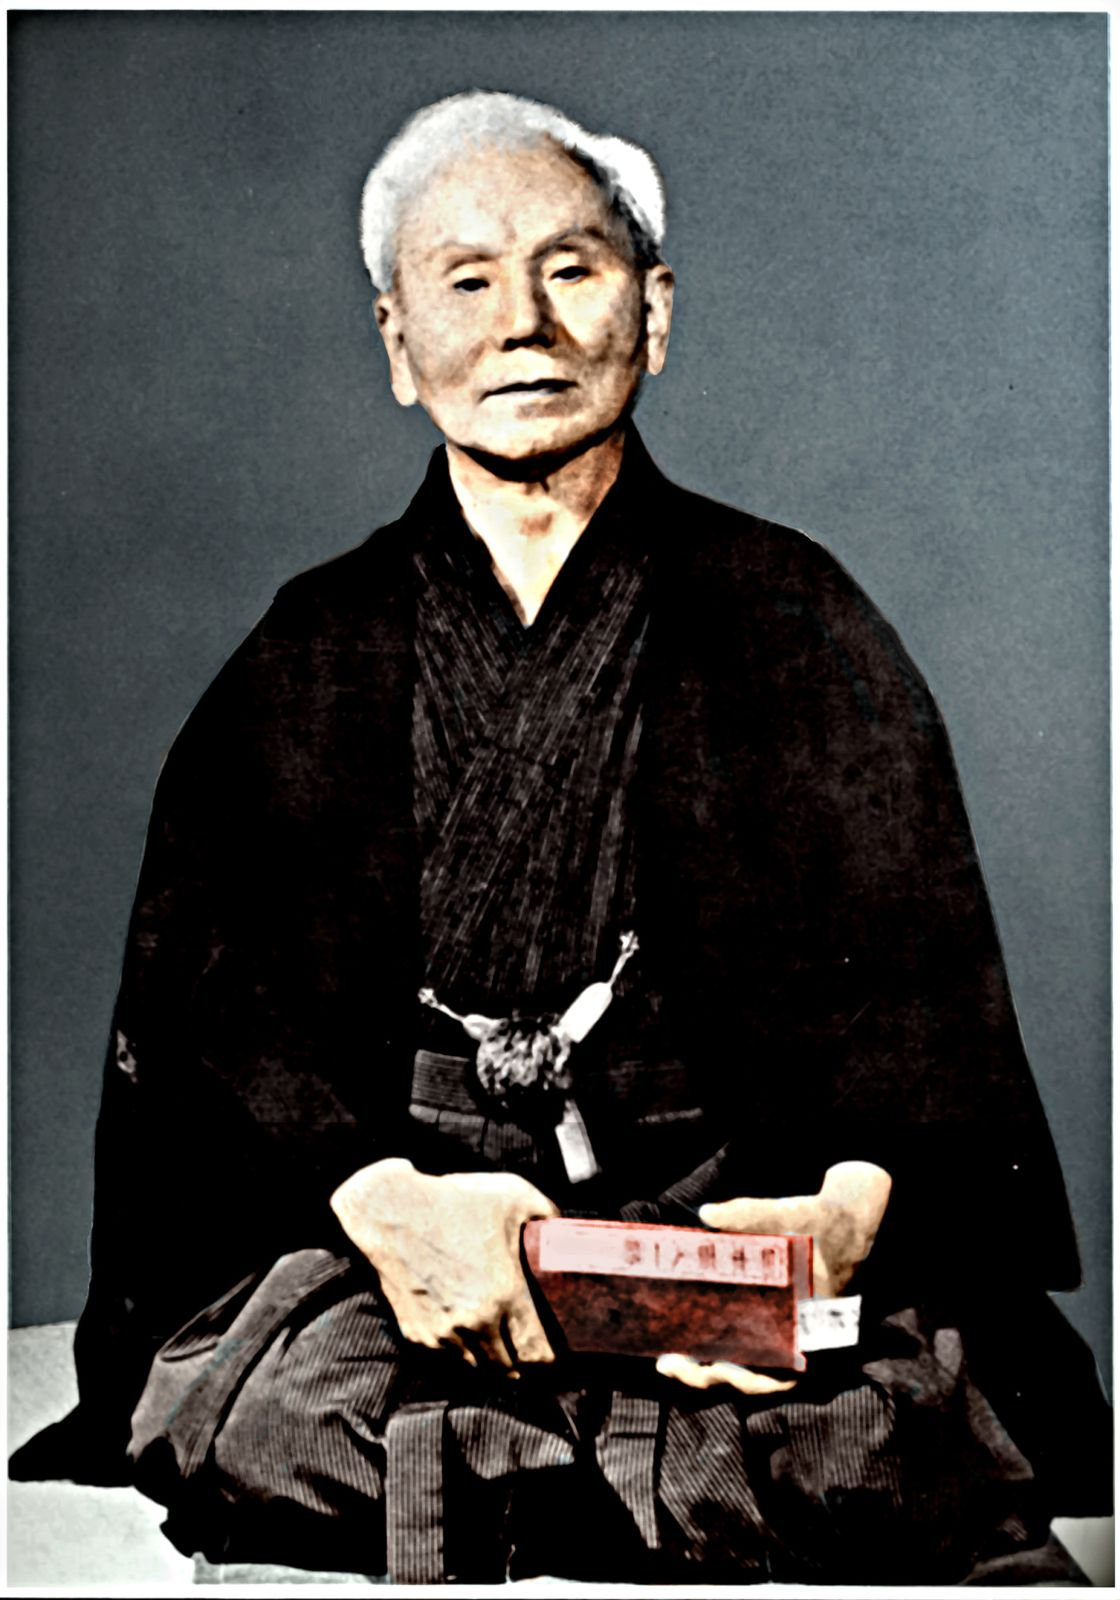 http://a405.idata.over-blog.com/2/40/52/93/Karate-Shotokan-Ma--_----tre-Funakoshi-Photo.jpg